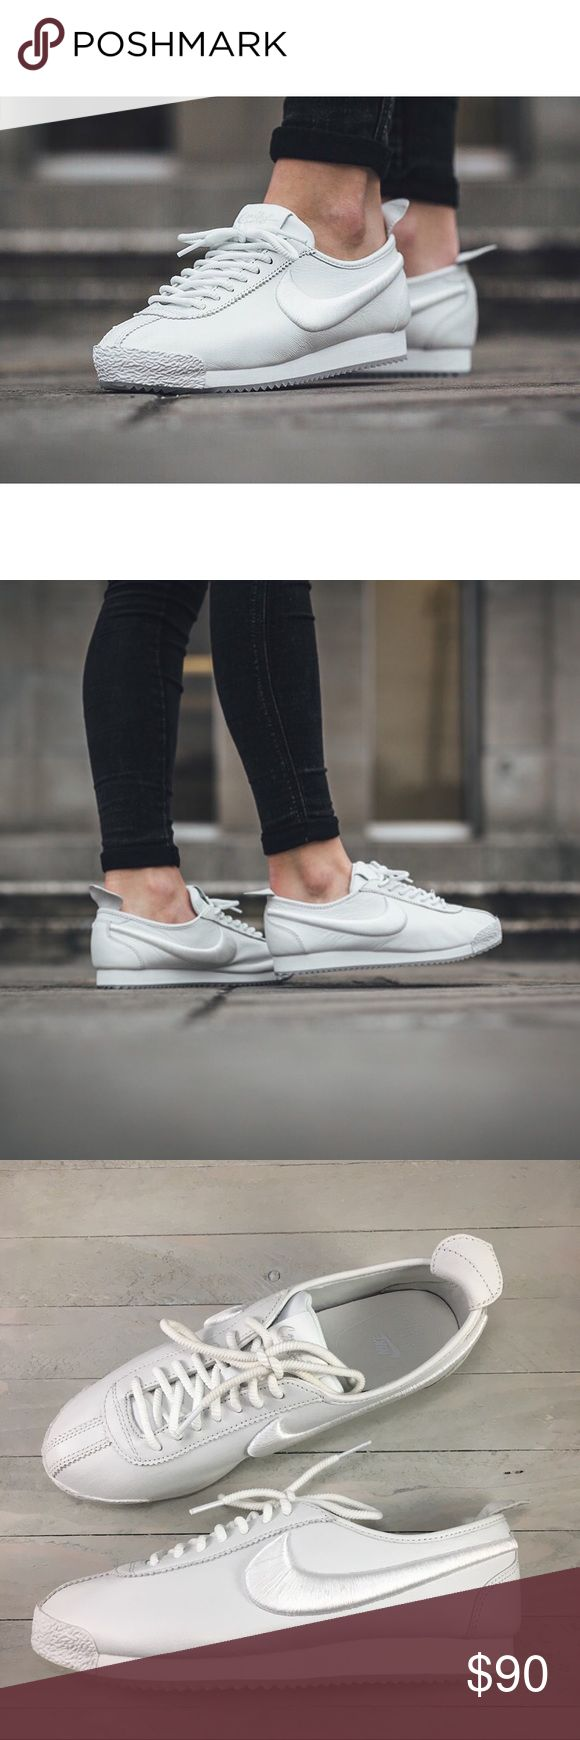 Women's Nike Cortez '72 SI Sneakers Women's Nike Cortez '72 SI Sneakers was designed to be lighter and more waterproof than any other shoe.  Style/Color: 881205-100  • Women's size 8.5  • NEW in box (no lid) • No trades •100% authentic Nike Shoes Sneakers